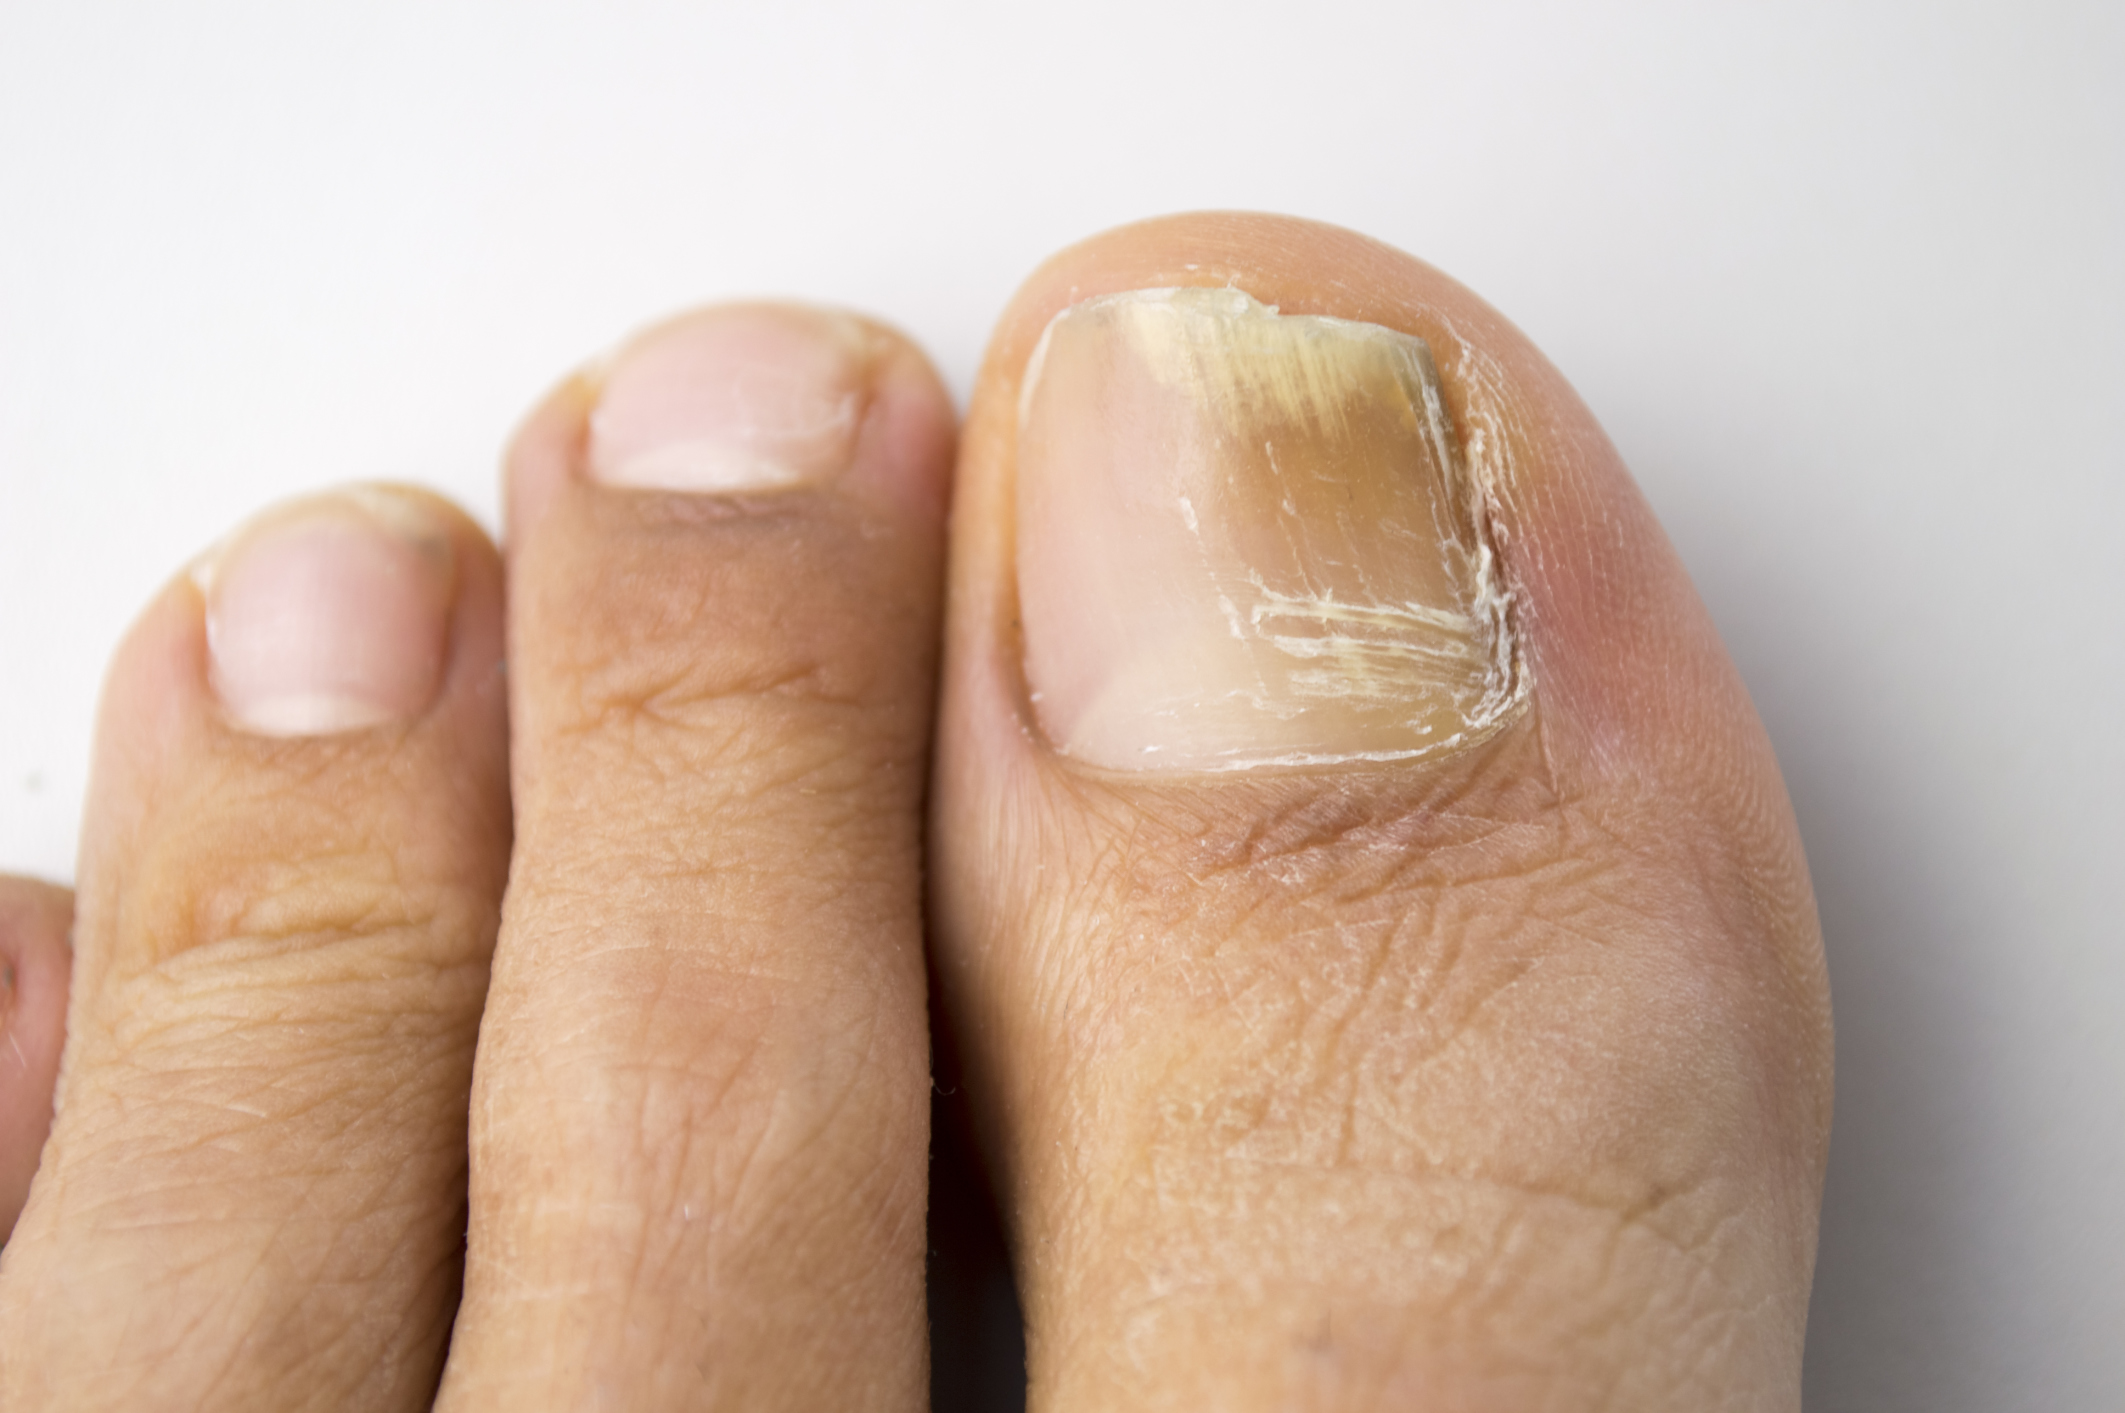 Home Remedies With Bleach for Toenail Fungus | LIVESTRONG.COM